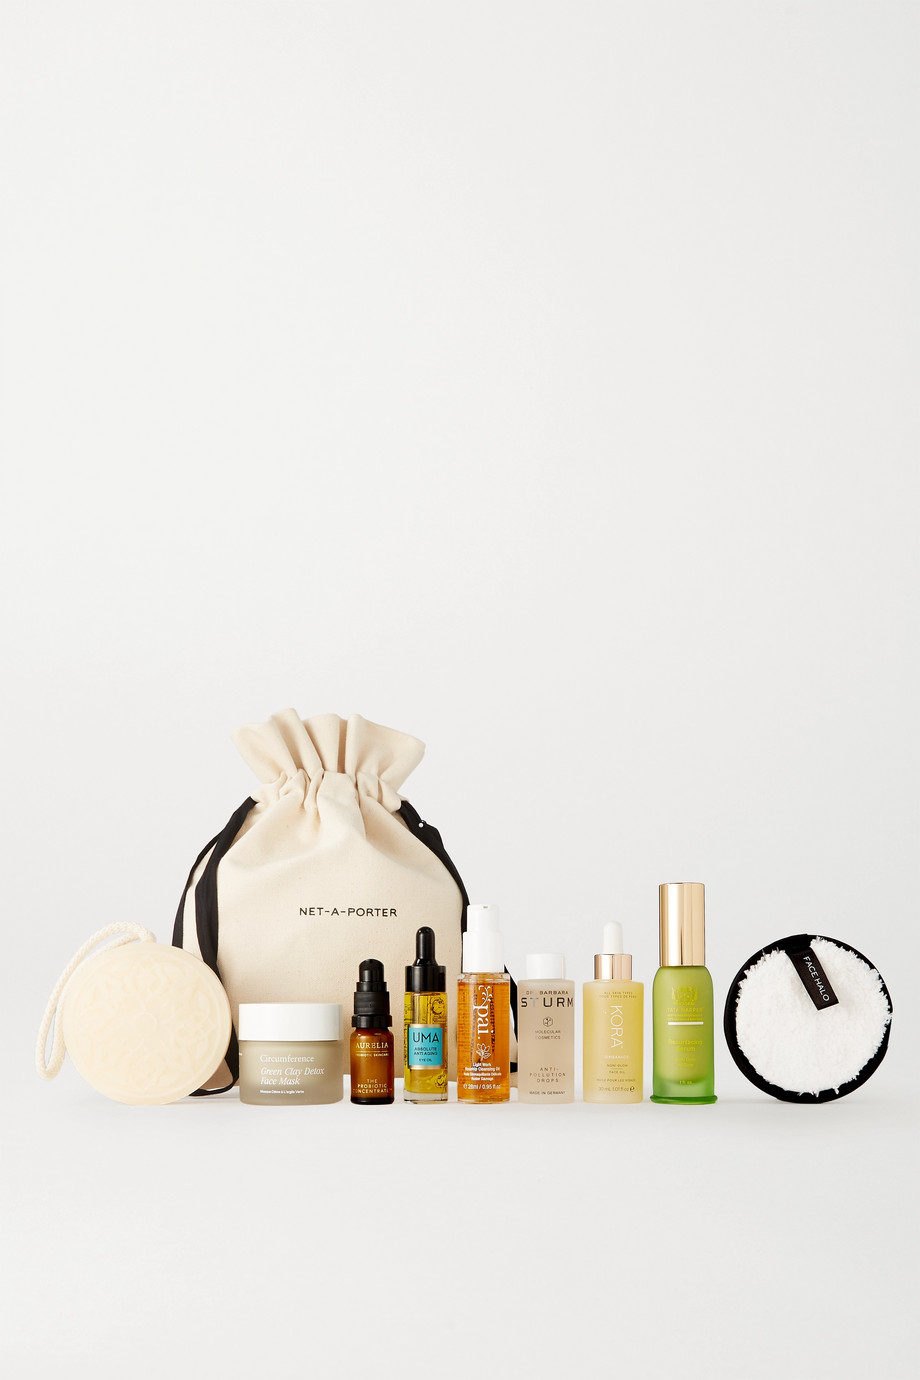 NET-A-PORTER BEAUTY + NET SUSTAIN Beauty Kit